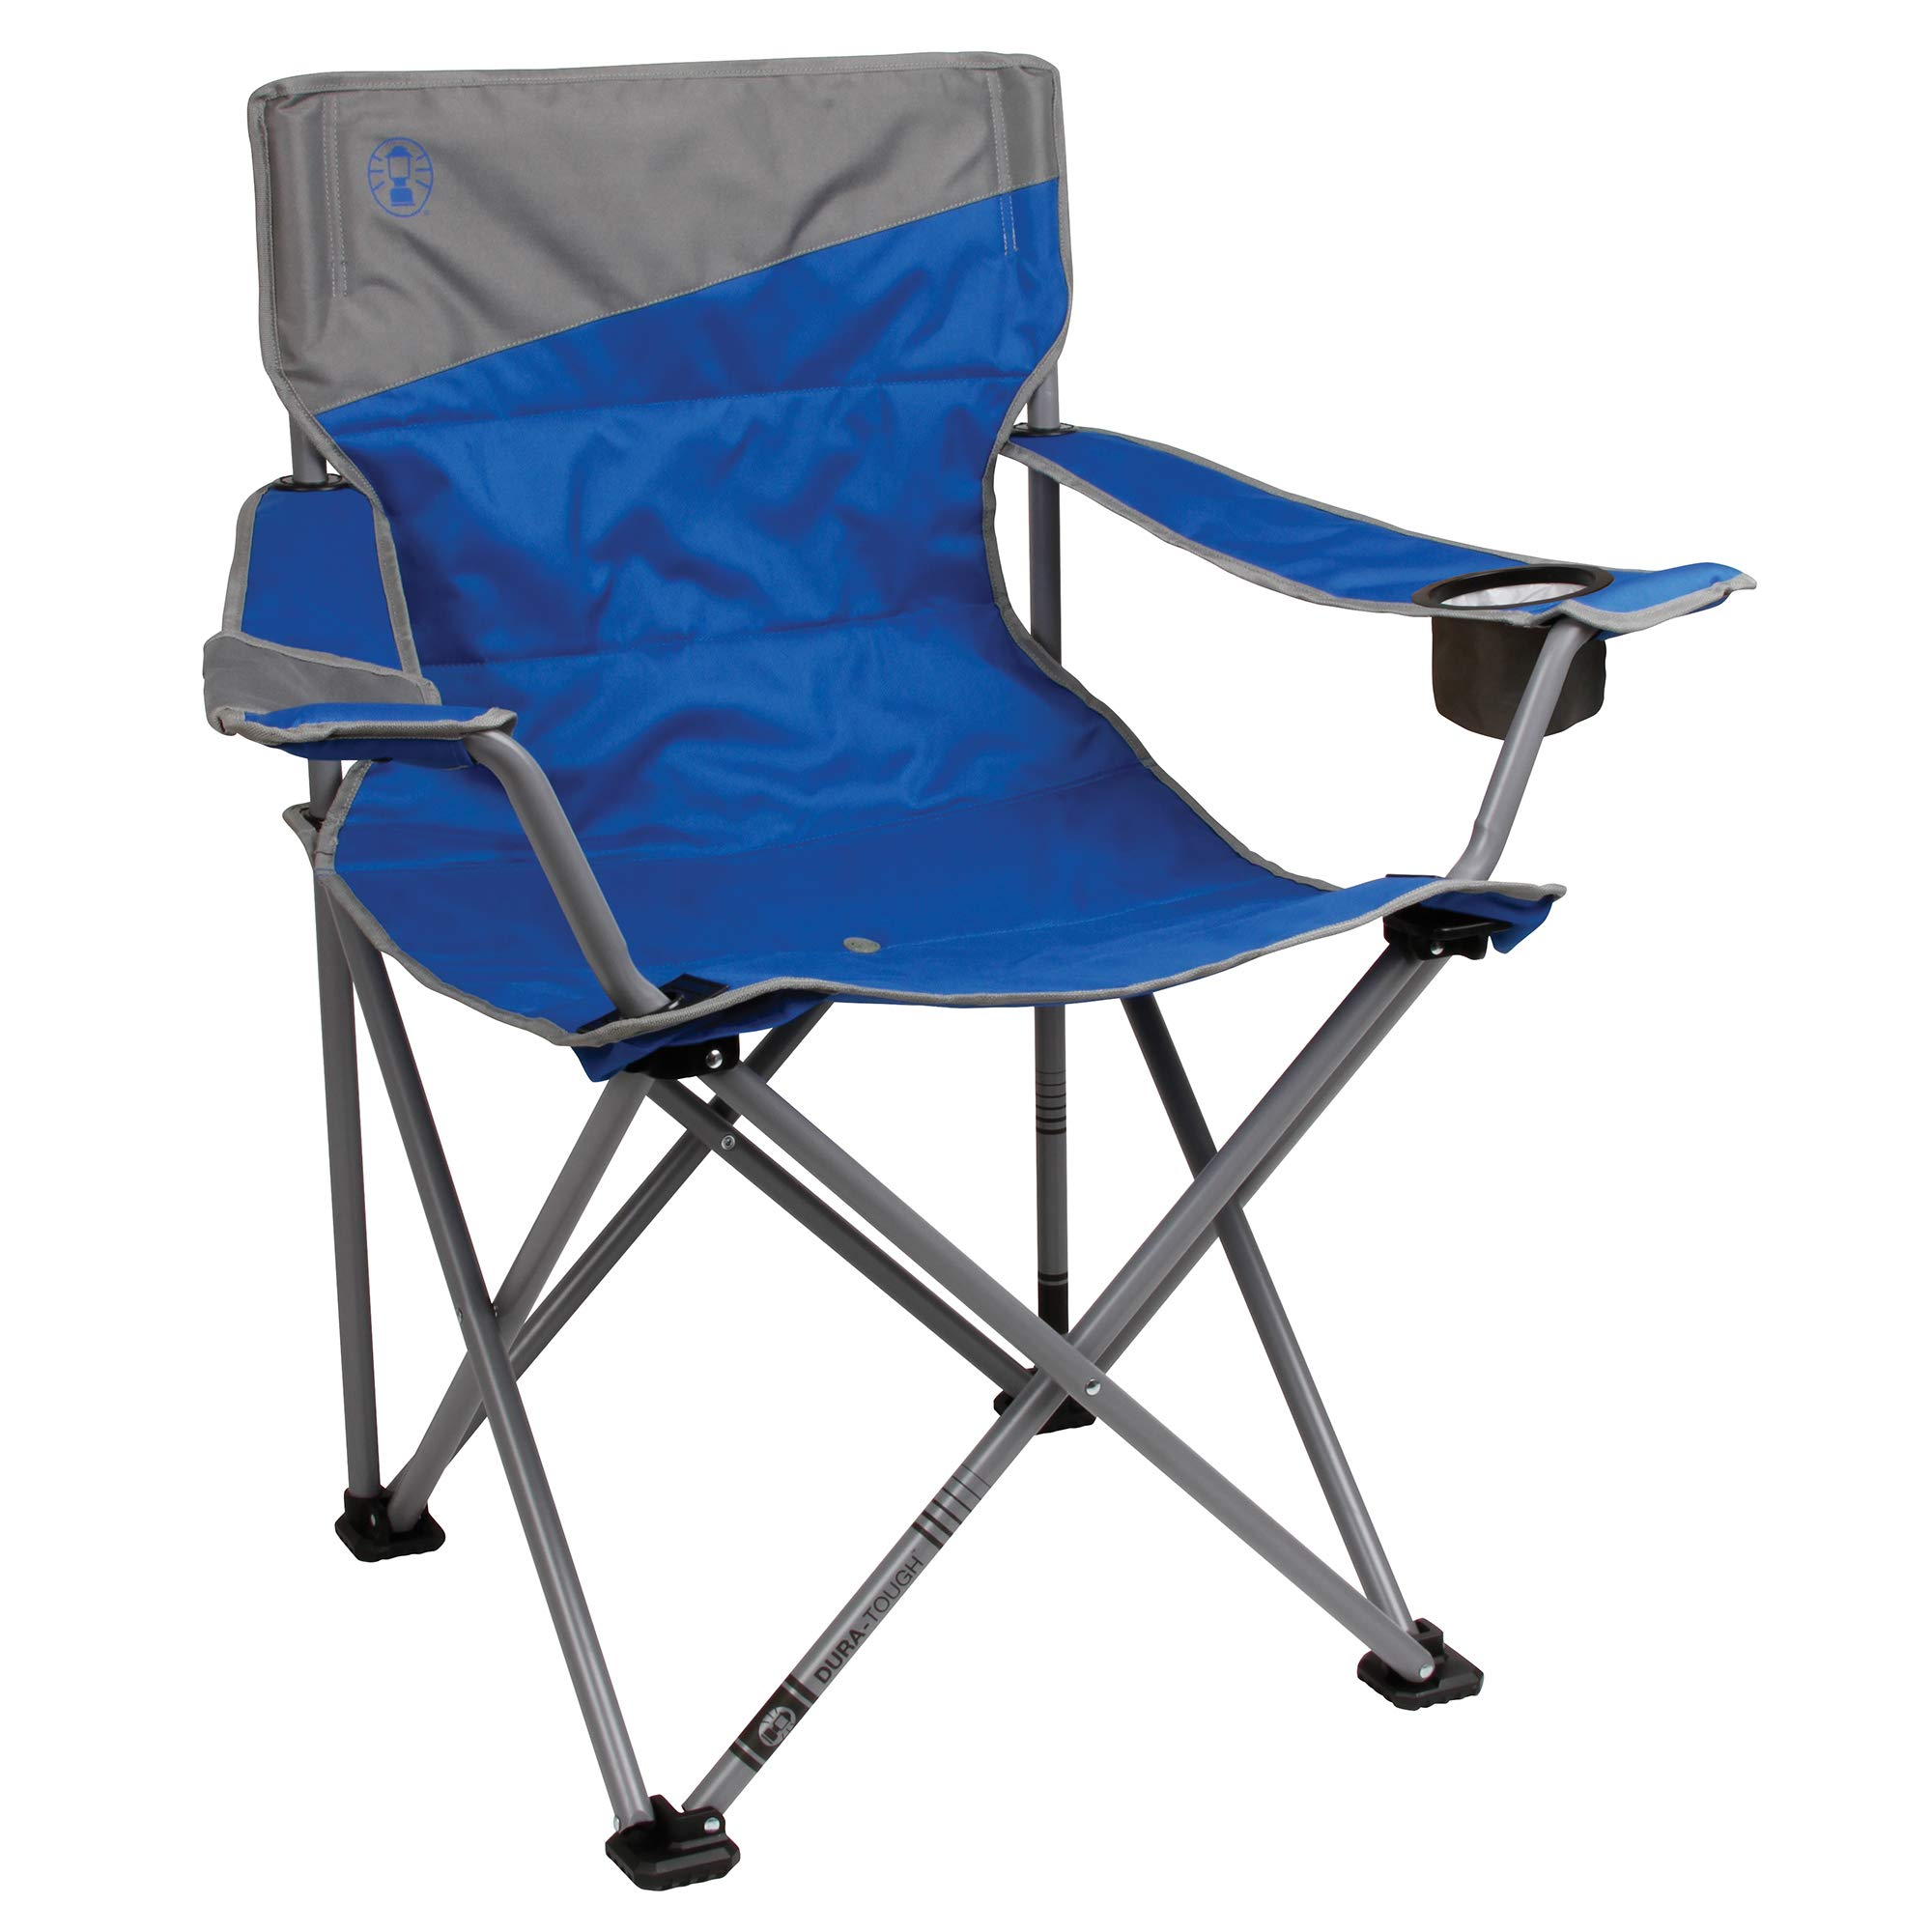 Coleman Camping Chair for Big and Tall Adults Tailgating Chair  Beach Chair Portable Quad Chair for Big and Tall Adults for the Outdoors by Coleman